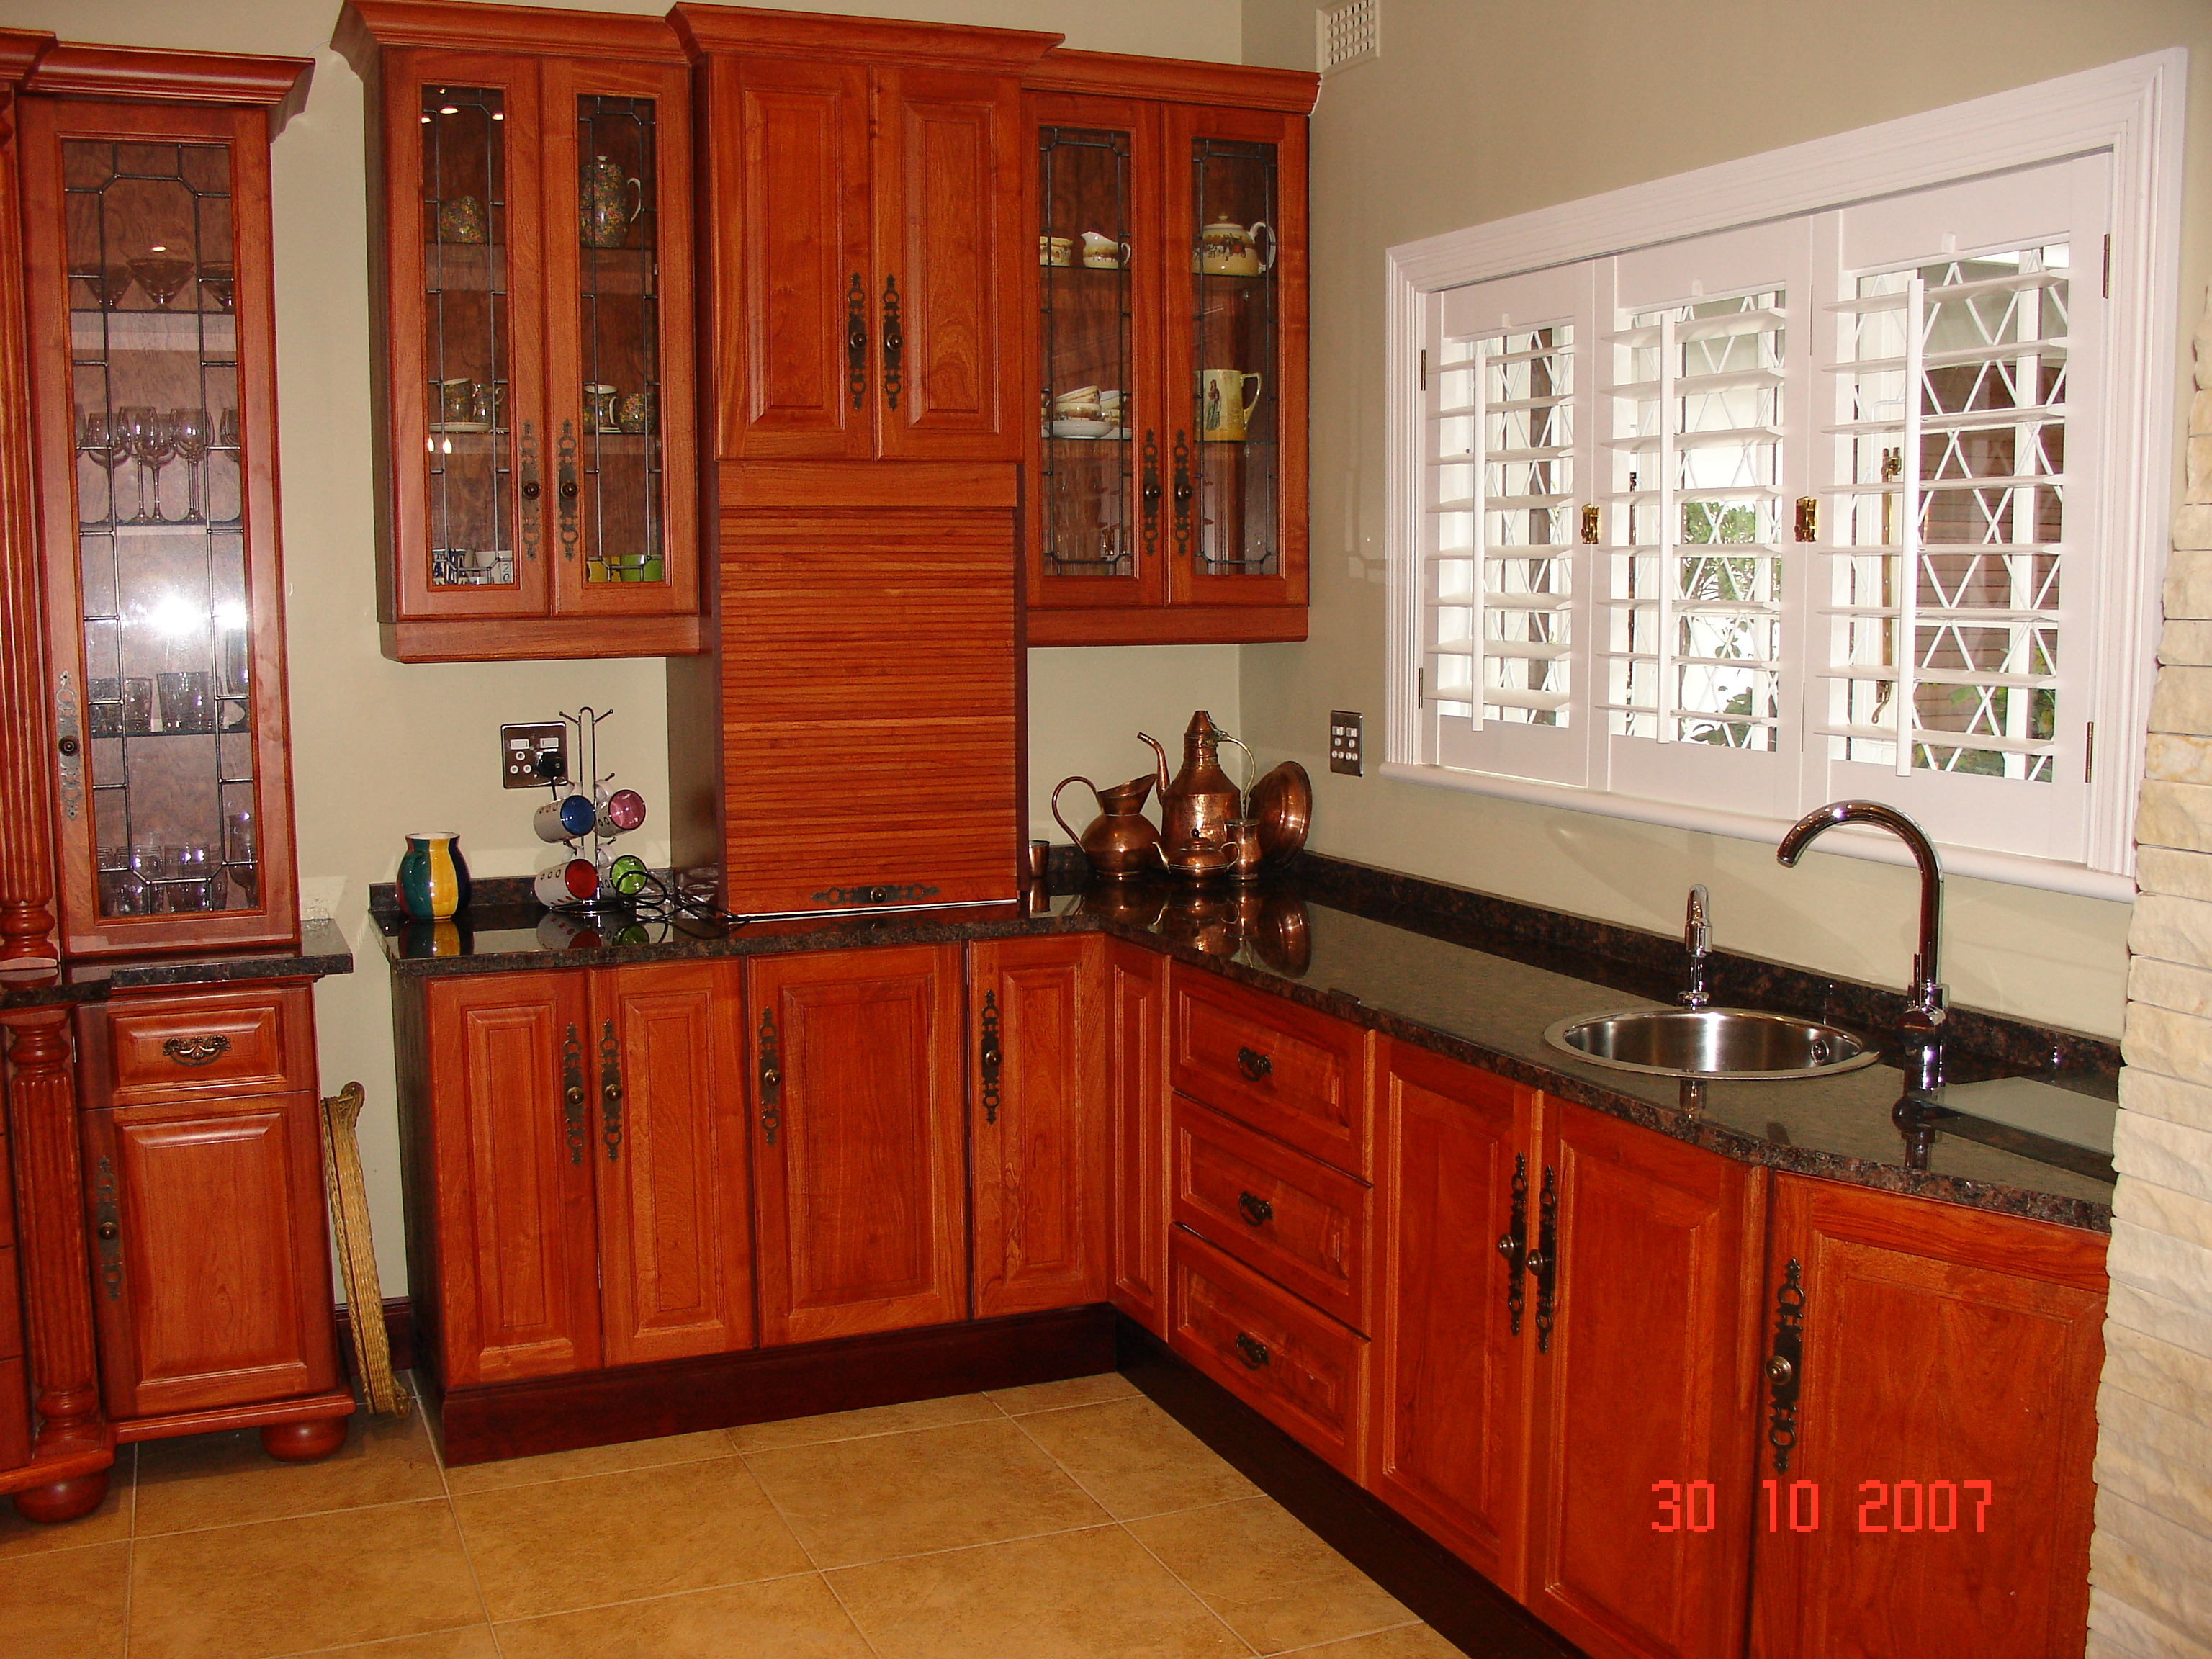 Rosewood kitchens cupboards nico 39 s kitchens - Kitchen built in cupboards designs ...